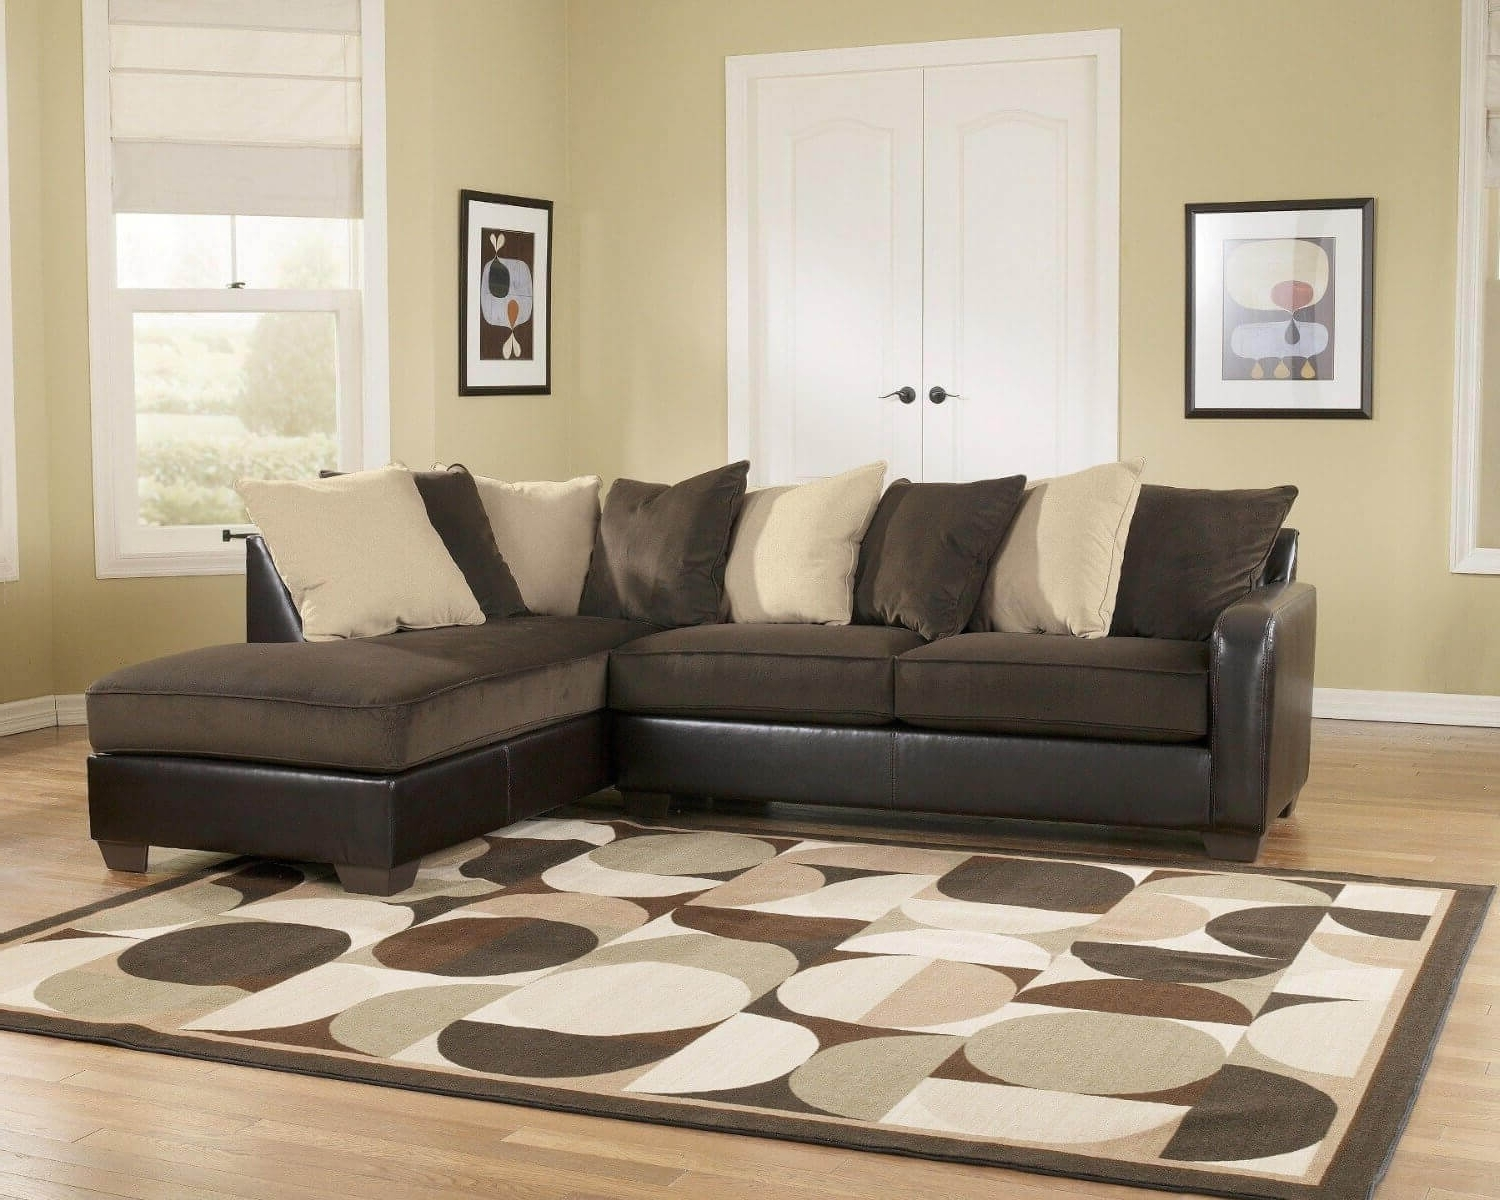 Sectional Sofas Under 1500 Intended For Well Liked 100 Awesome Sectional Sofas Under $1,000 (2018) (View 12 of 20)